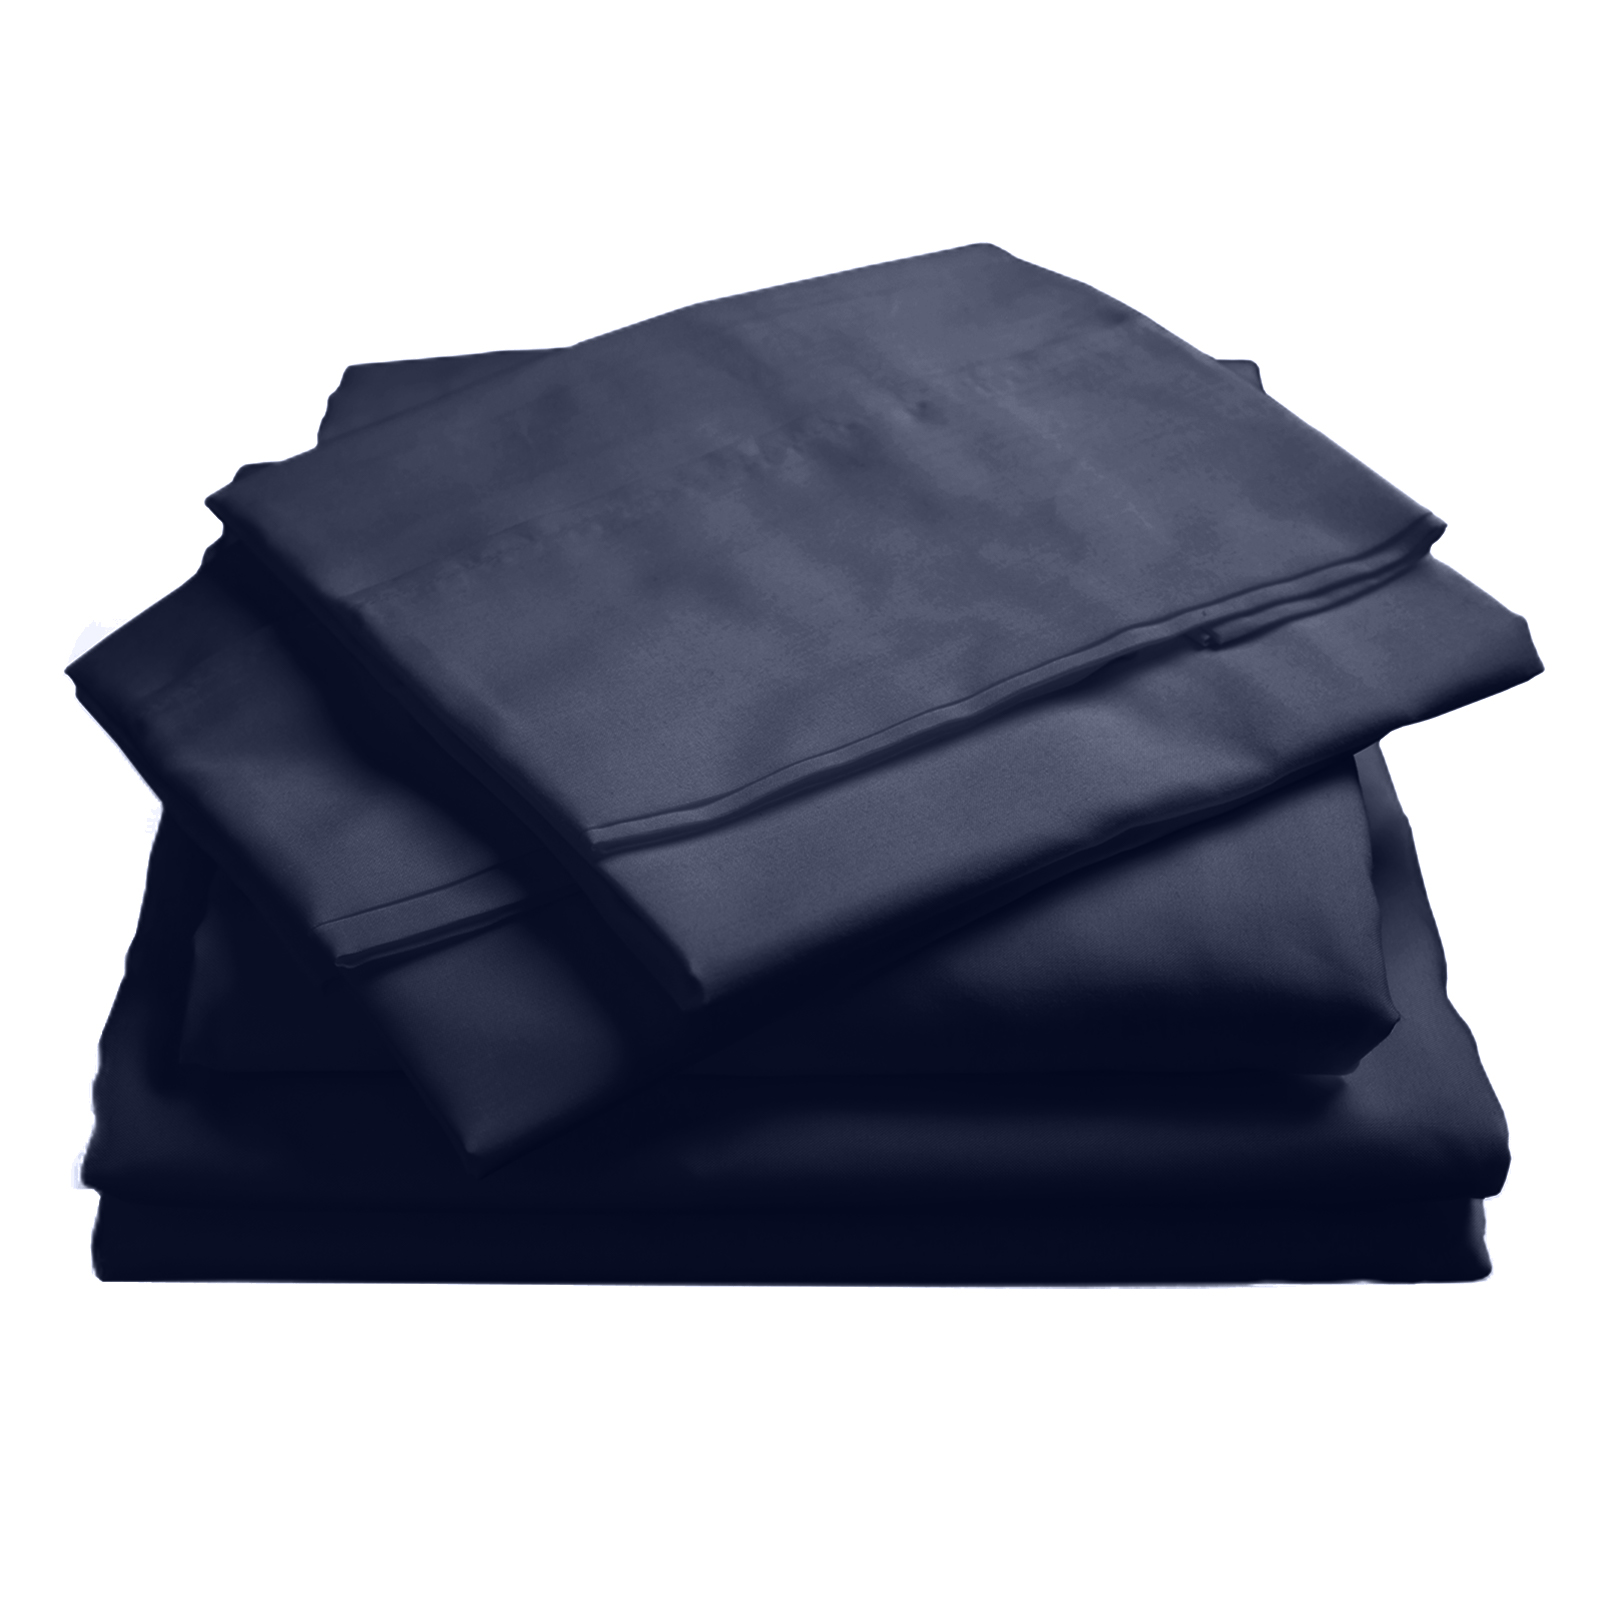 thumbnail 73 - Royal Comfort 1000TC Hotel Grade Bamboo Cotton Sheets Pillowcases Set Ultrasoft